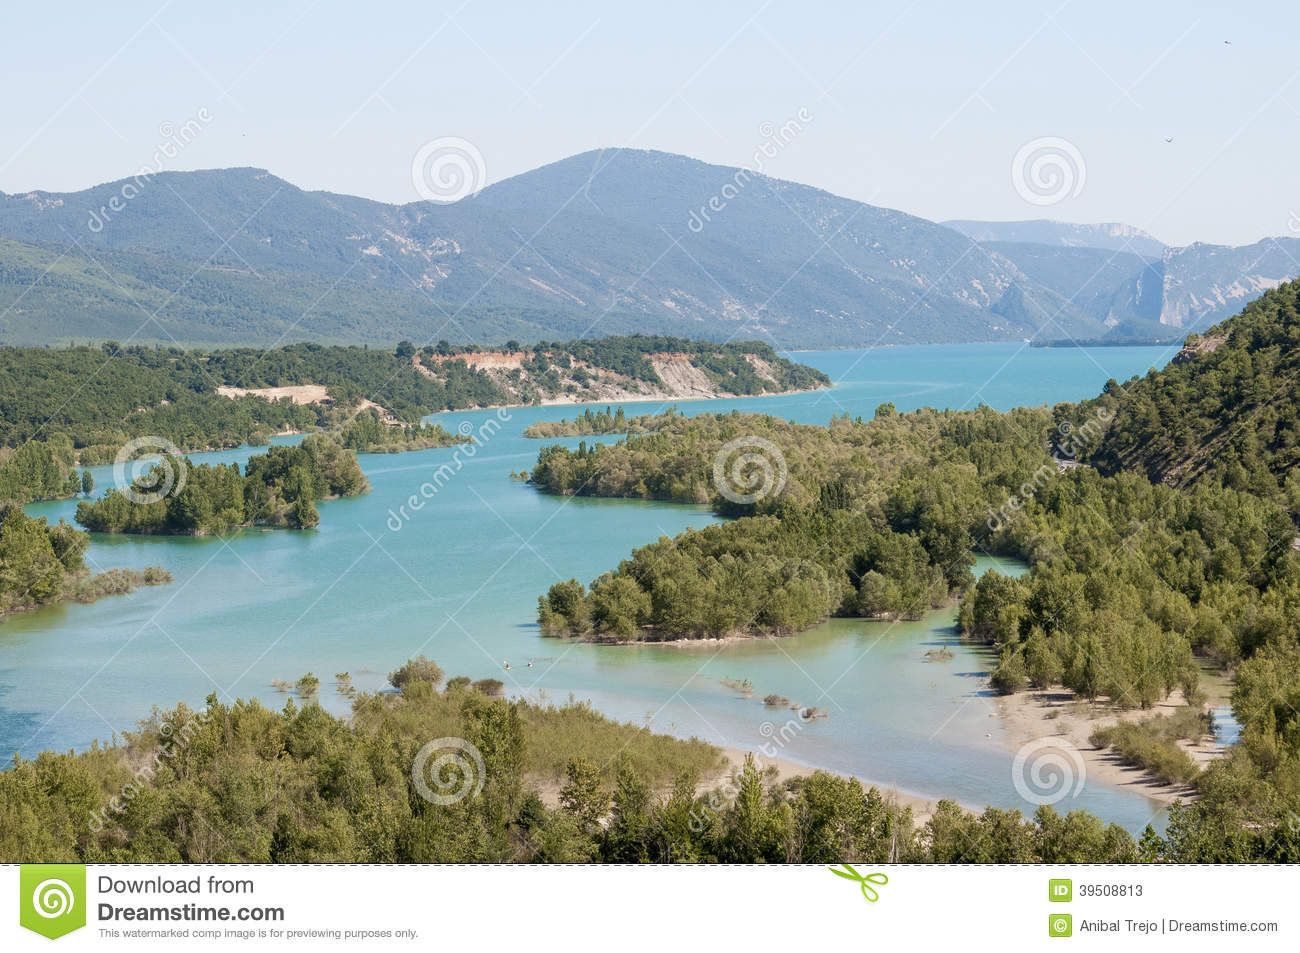 Mediano reservoir as seen from Ainsa, Spain